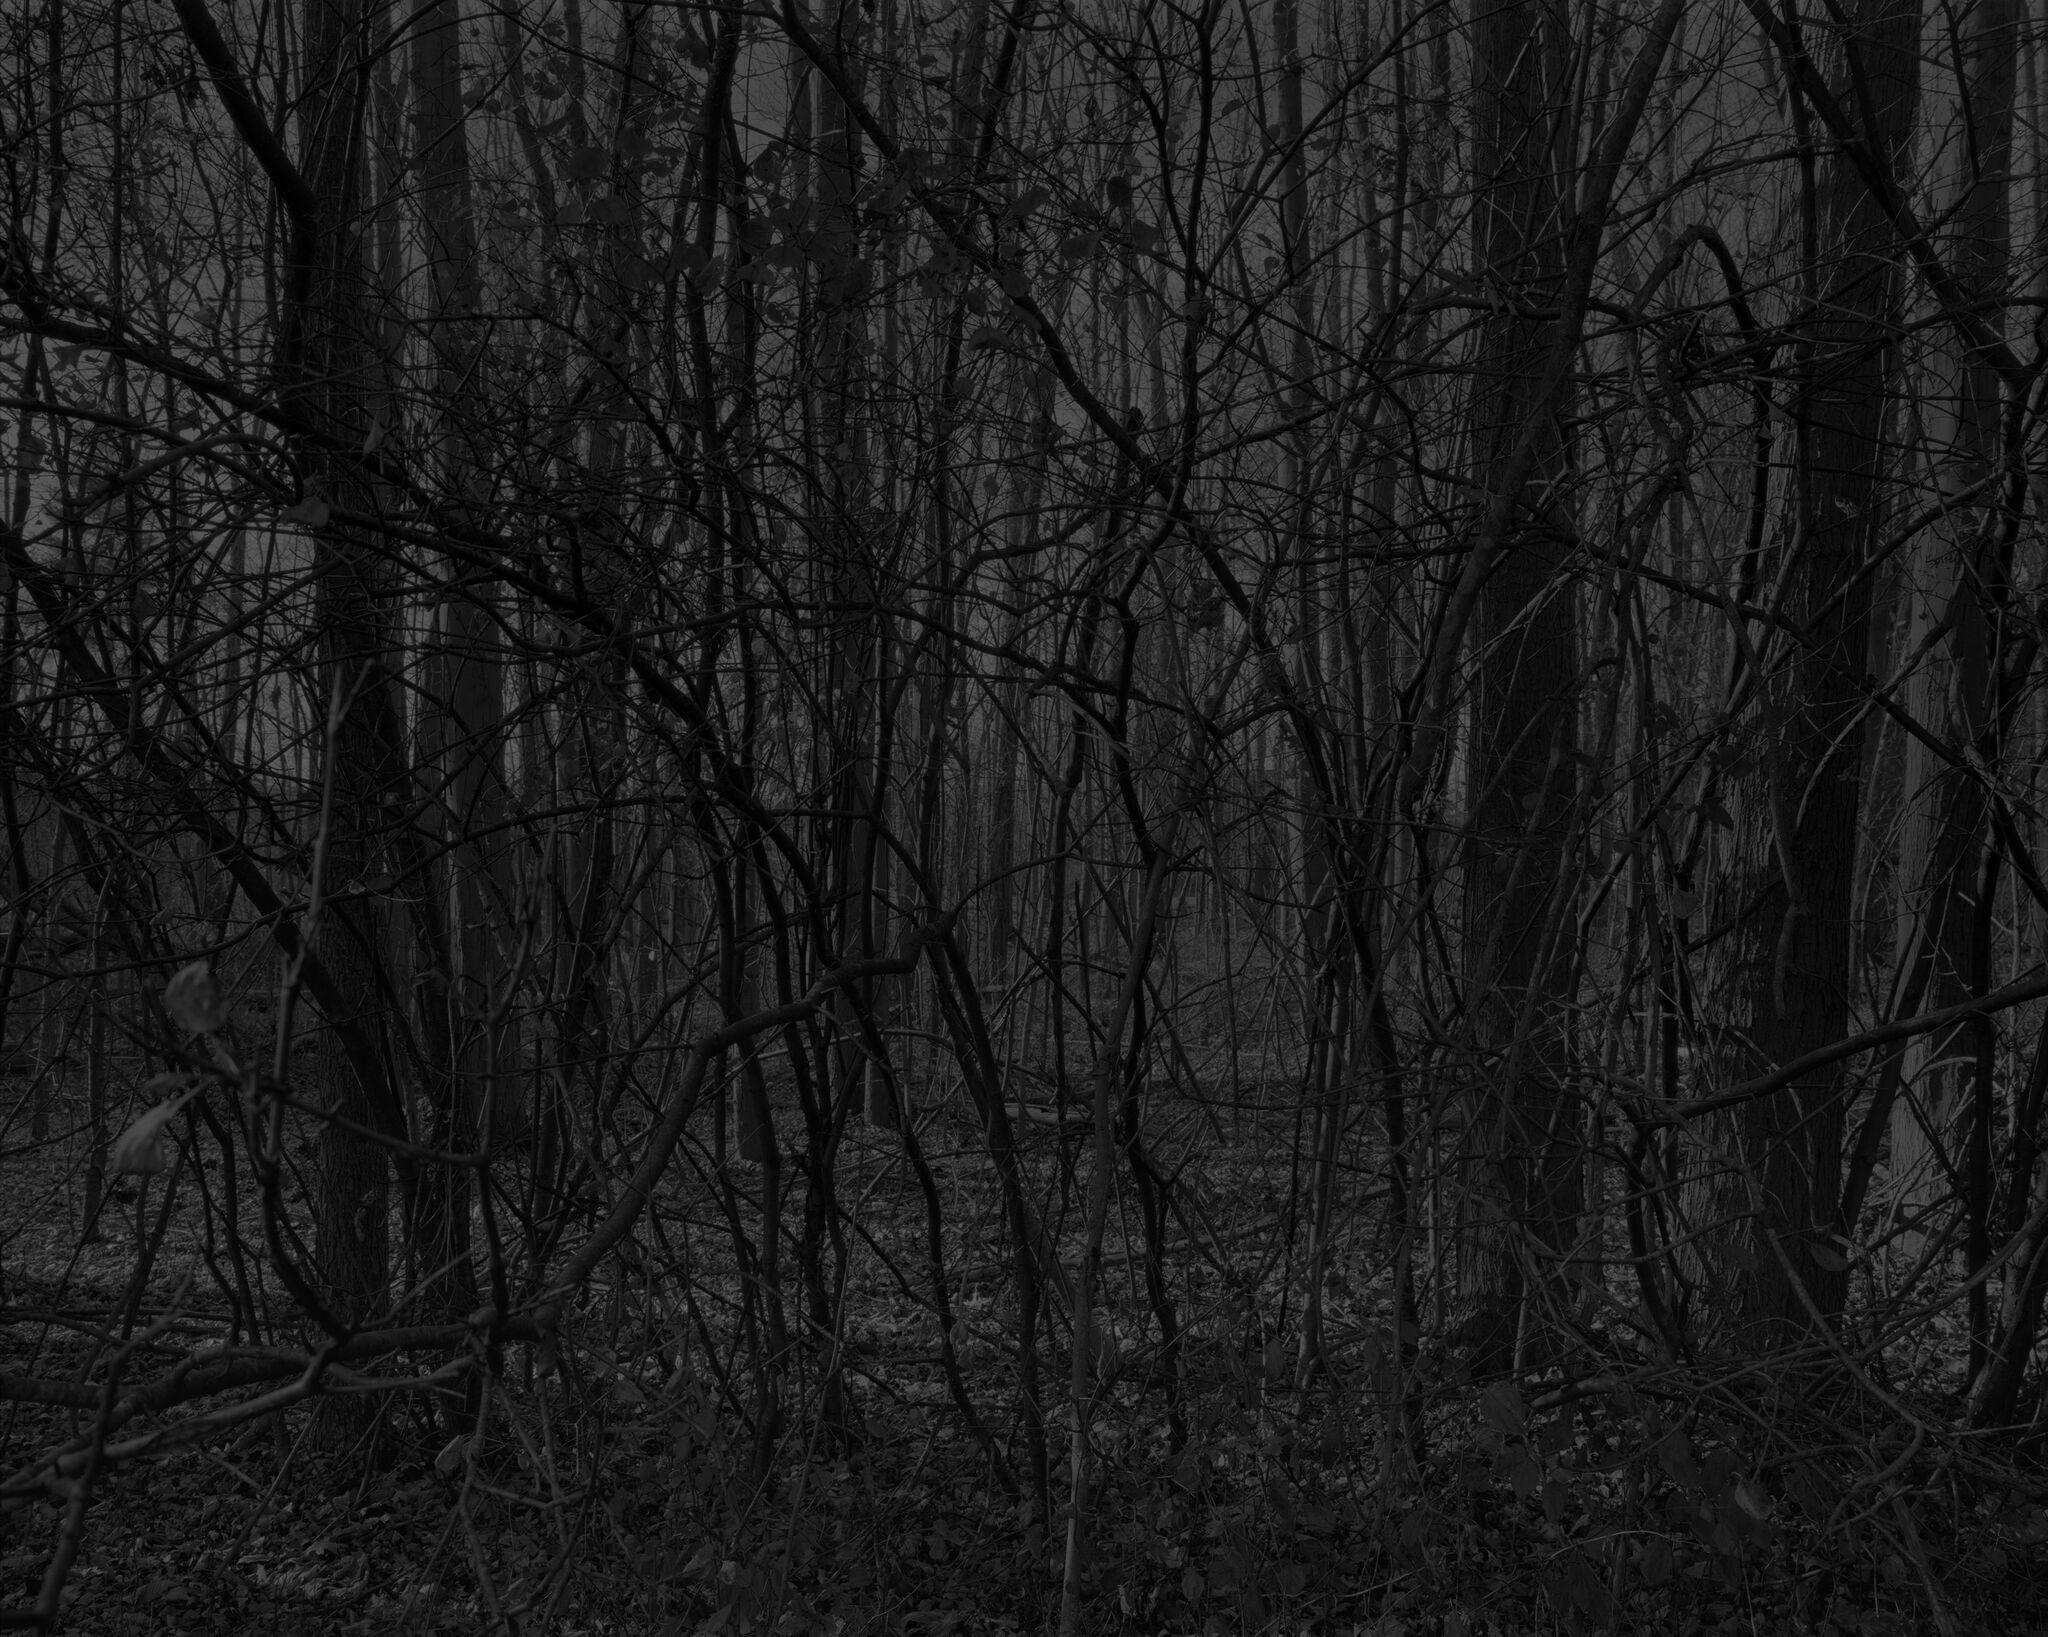 A greyscale close-up of a dense forest area.